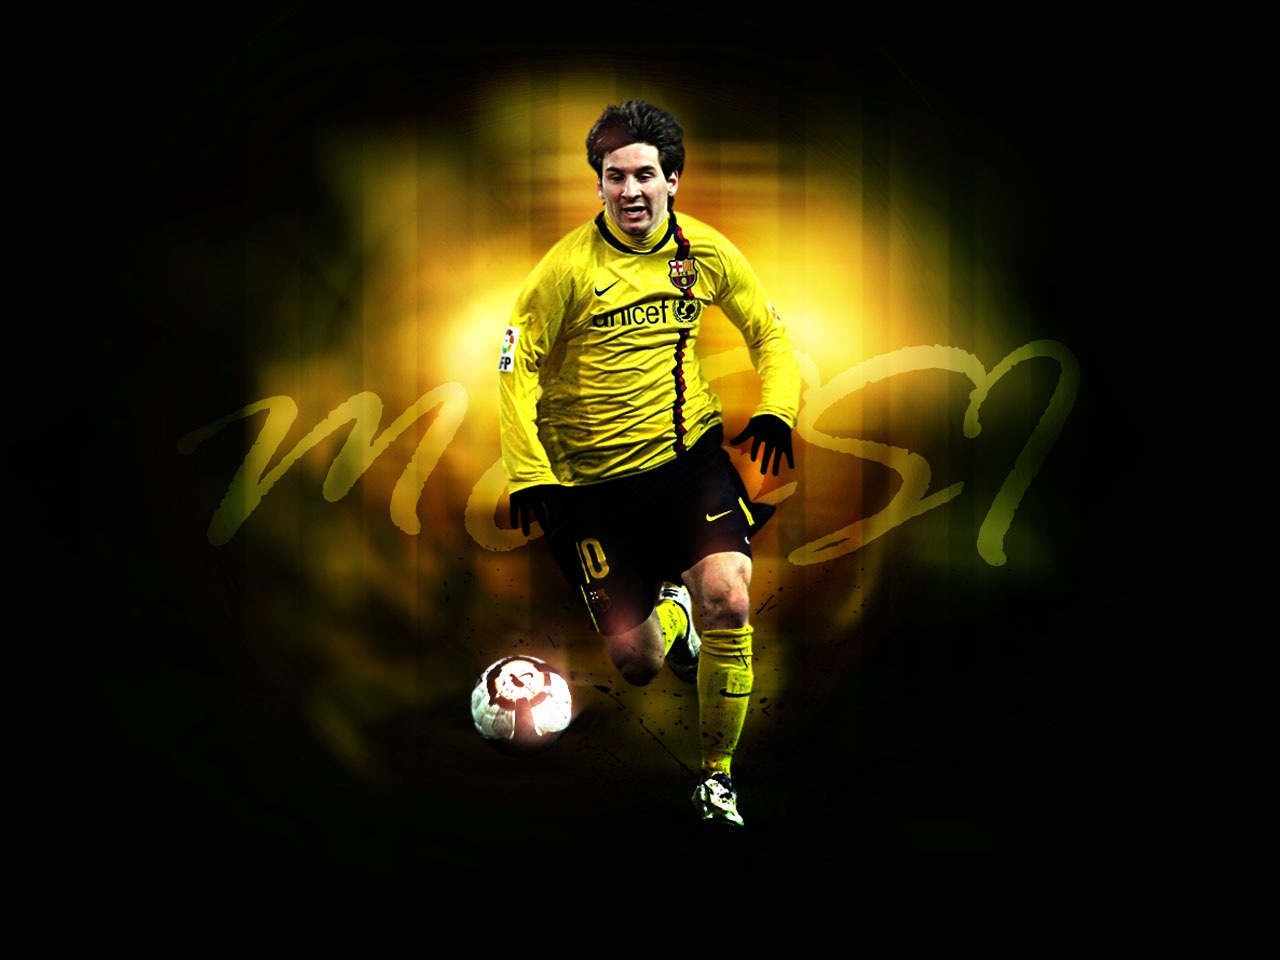 Messi Wallpaper: Football Super Star Player: Lionel Messi New HD Wallpapers